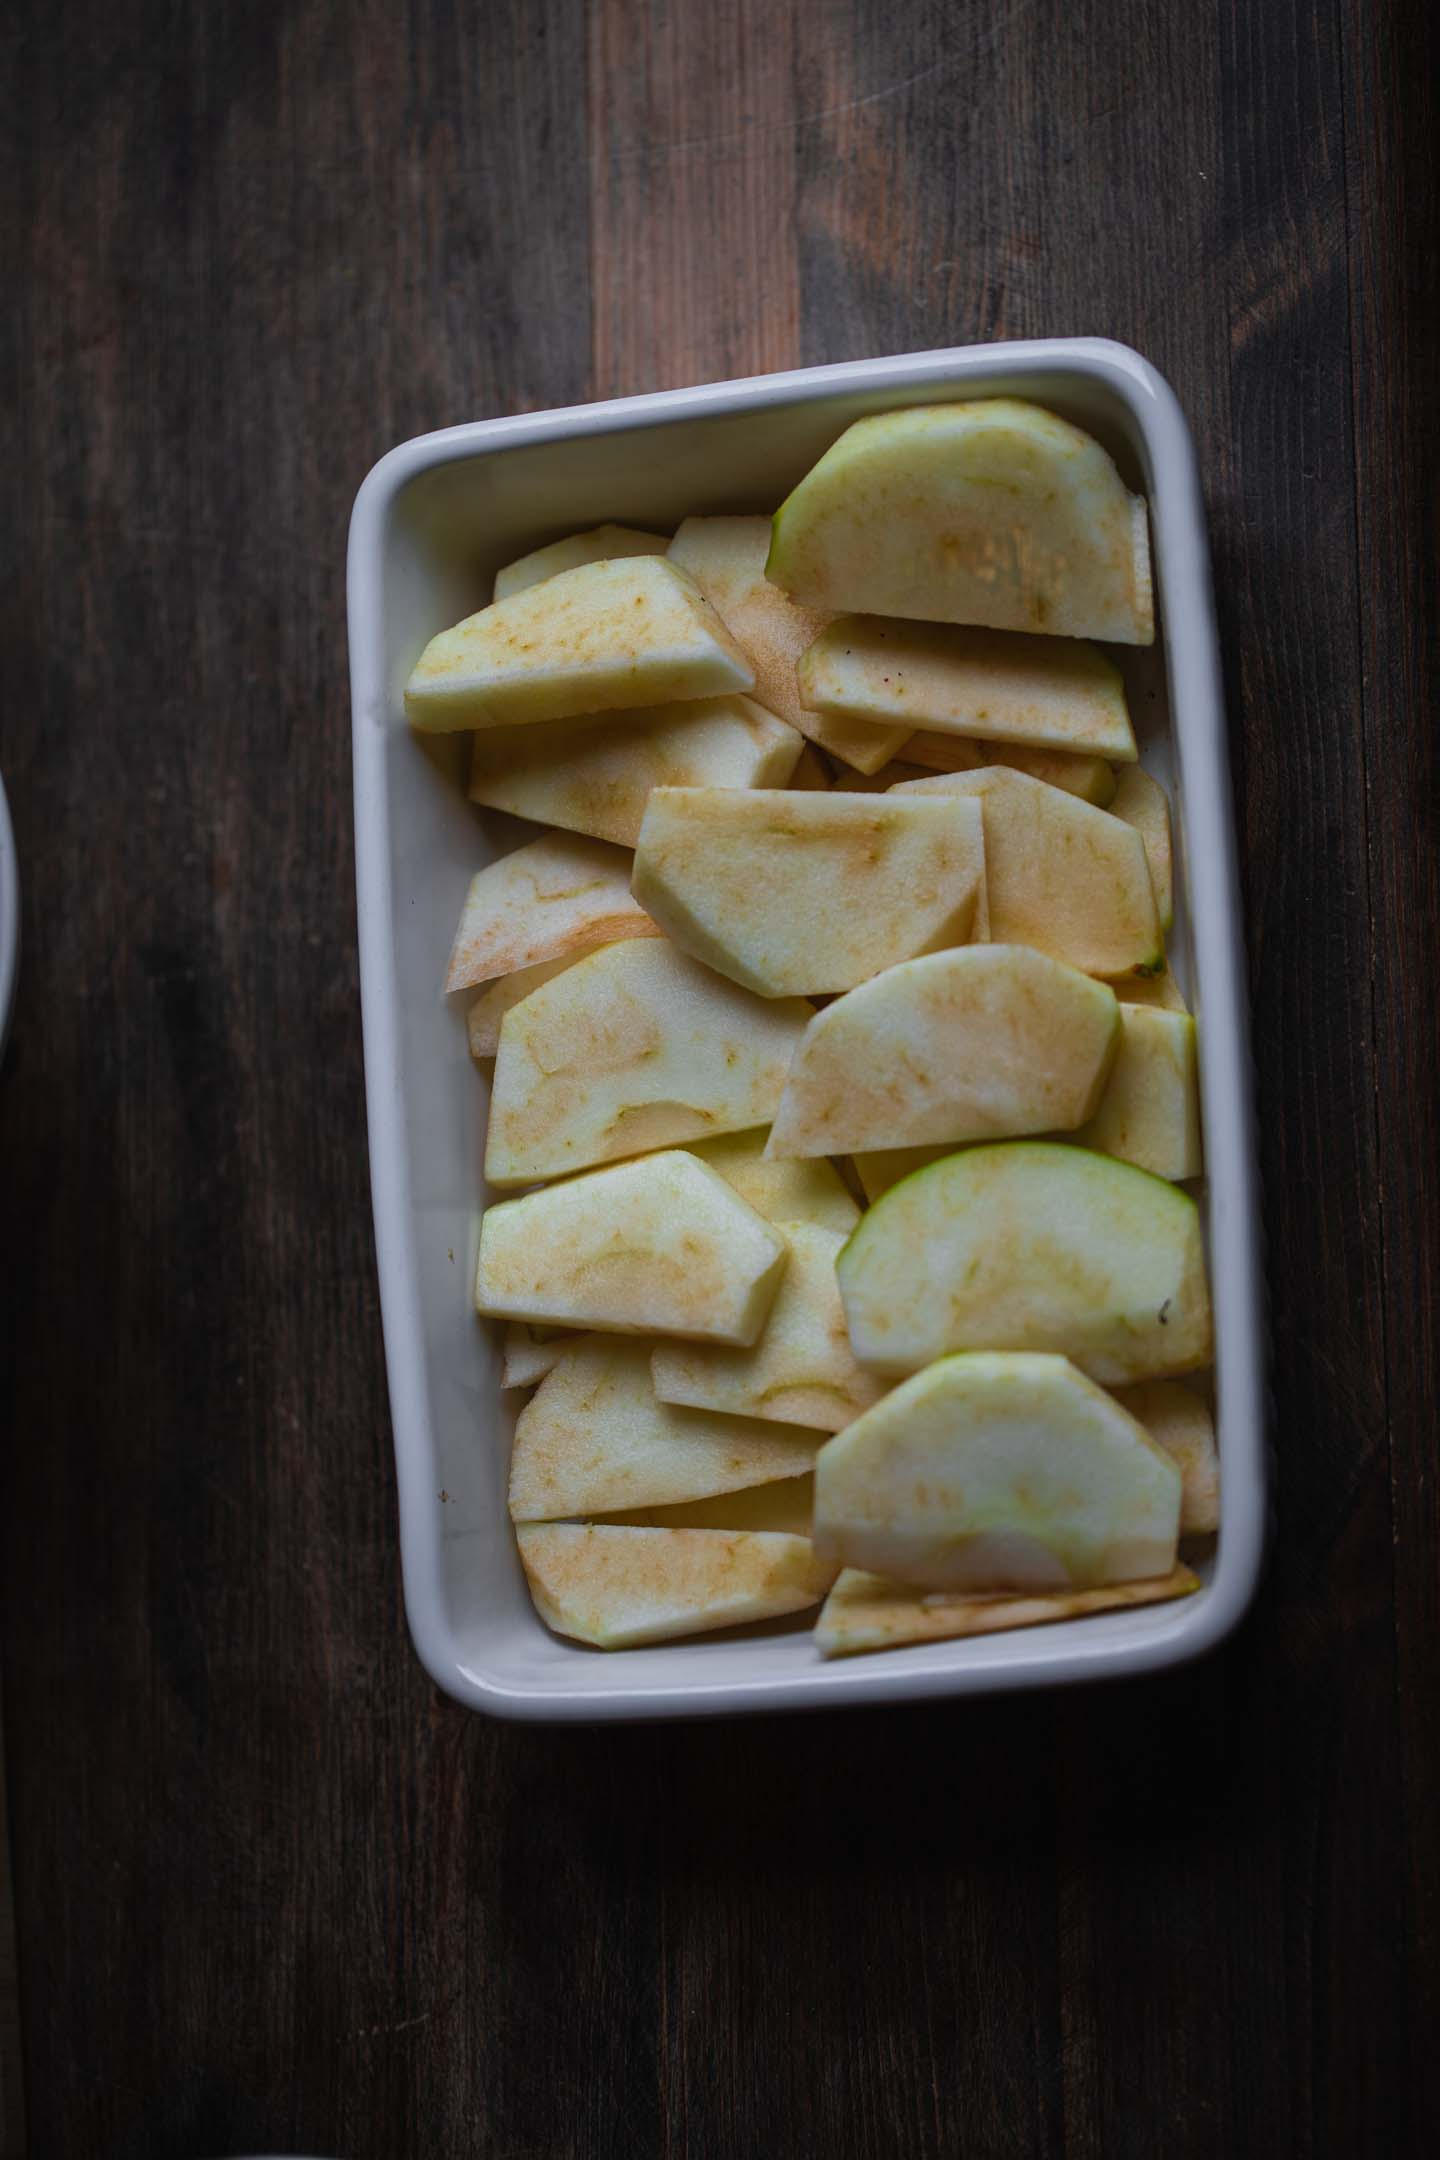 Apple slices in a baking dish